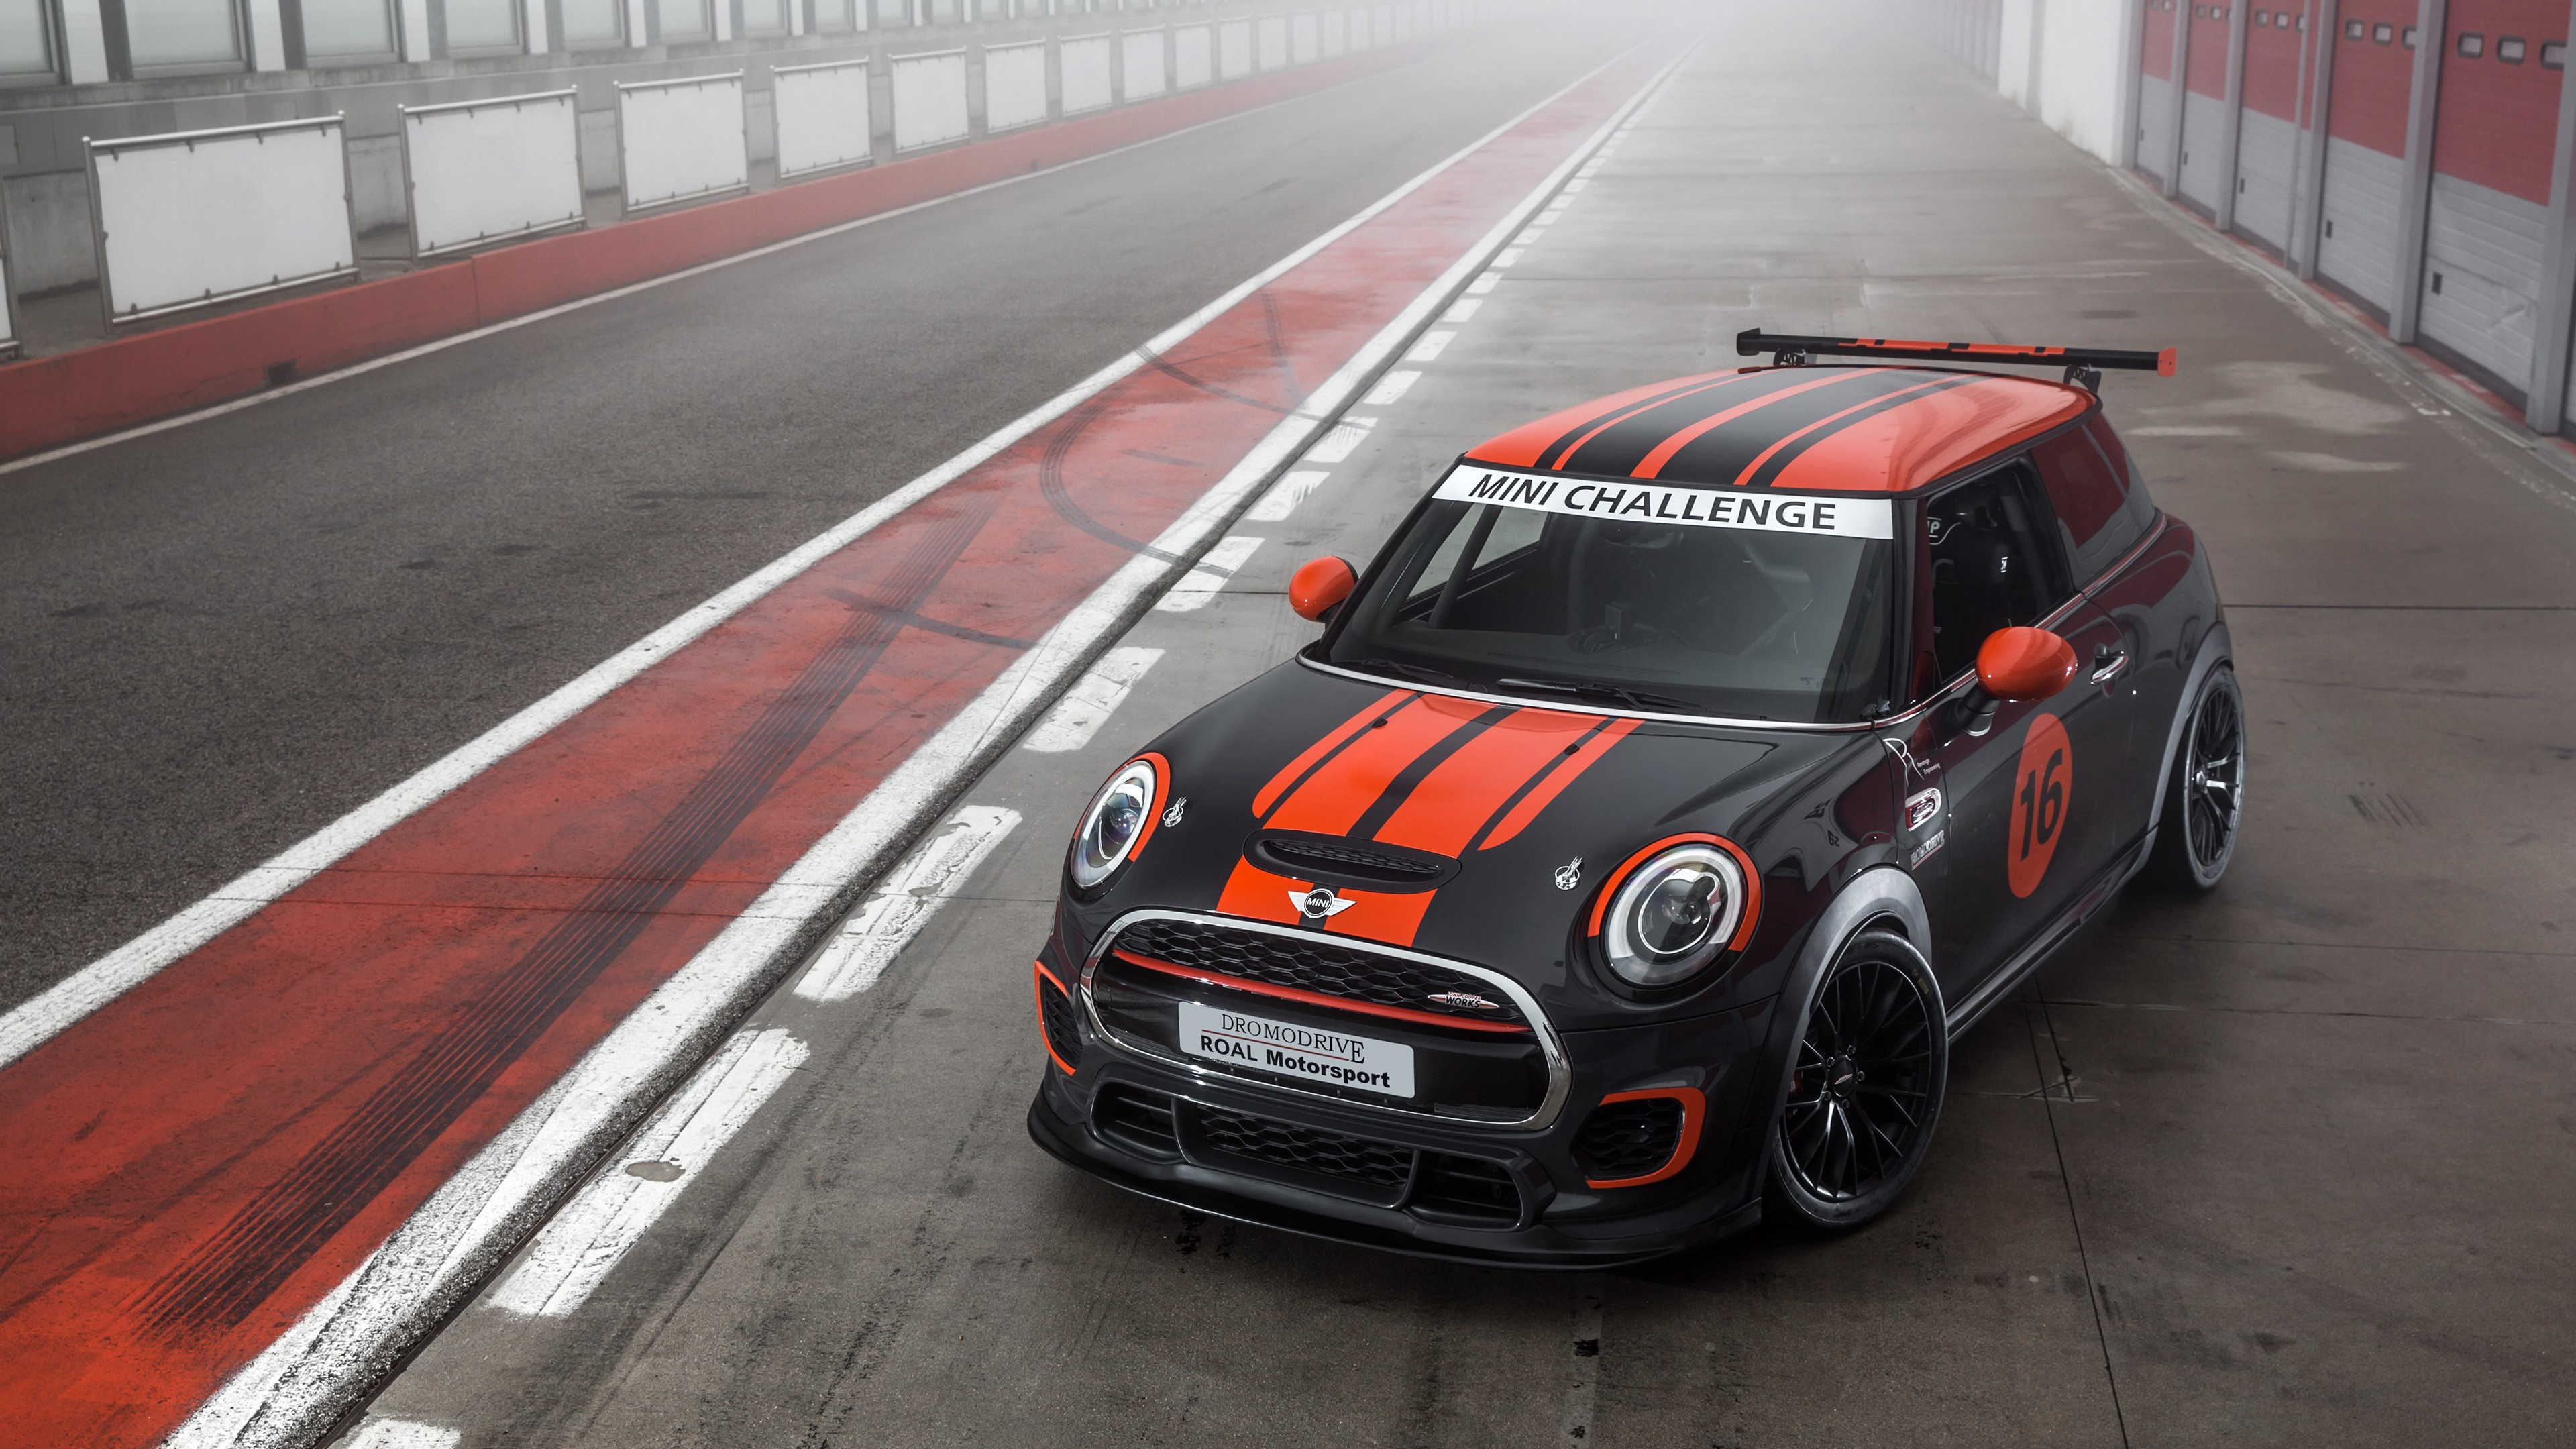 mini john cooper works challenge wallpaper hd car wallpapers id 6566. Black Bedroom Furniture Sets. Home Design Ideas